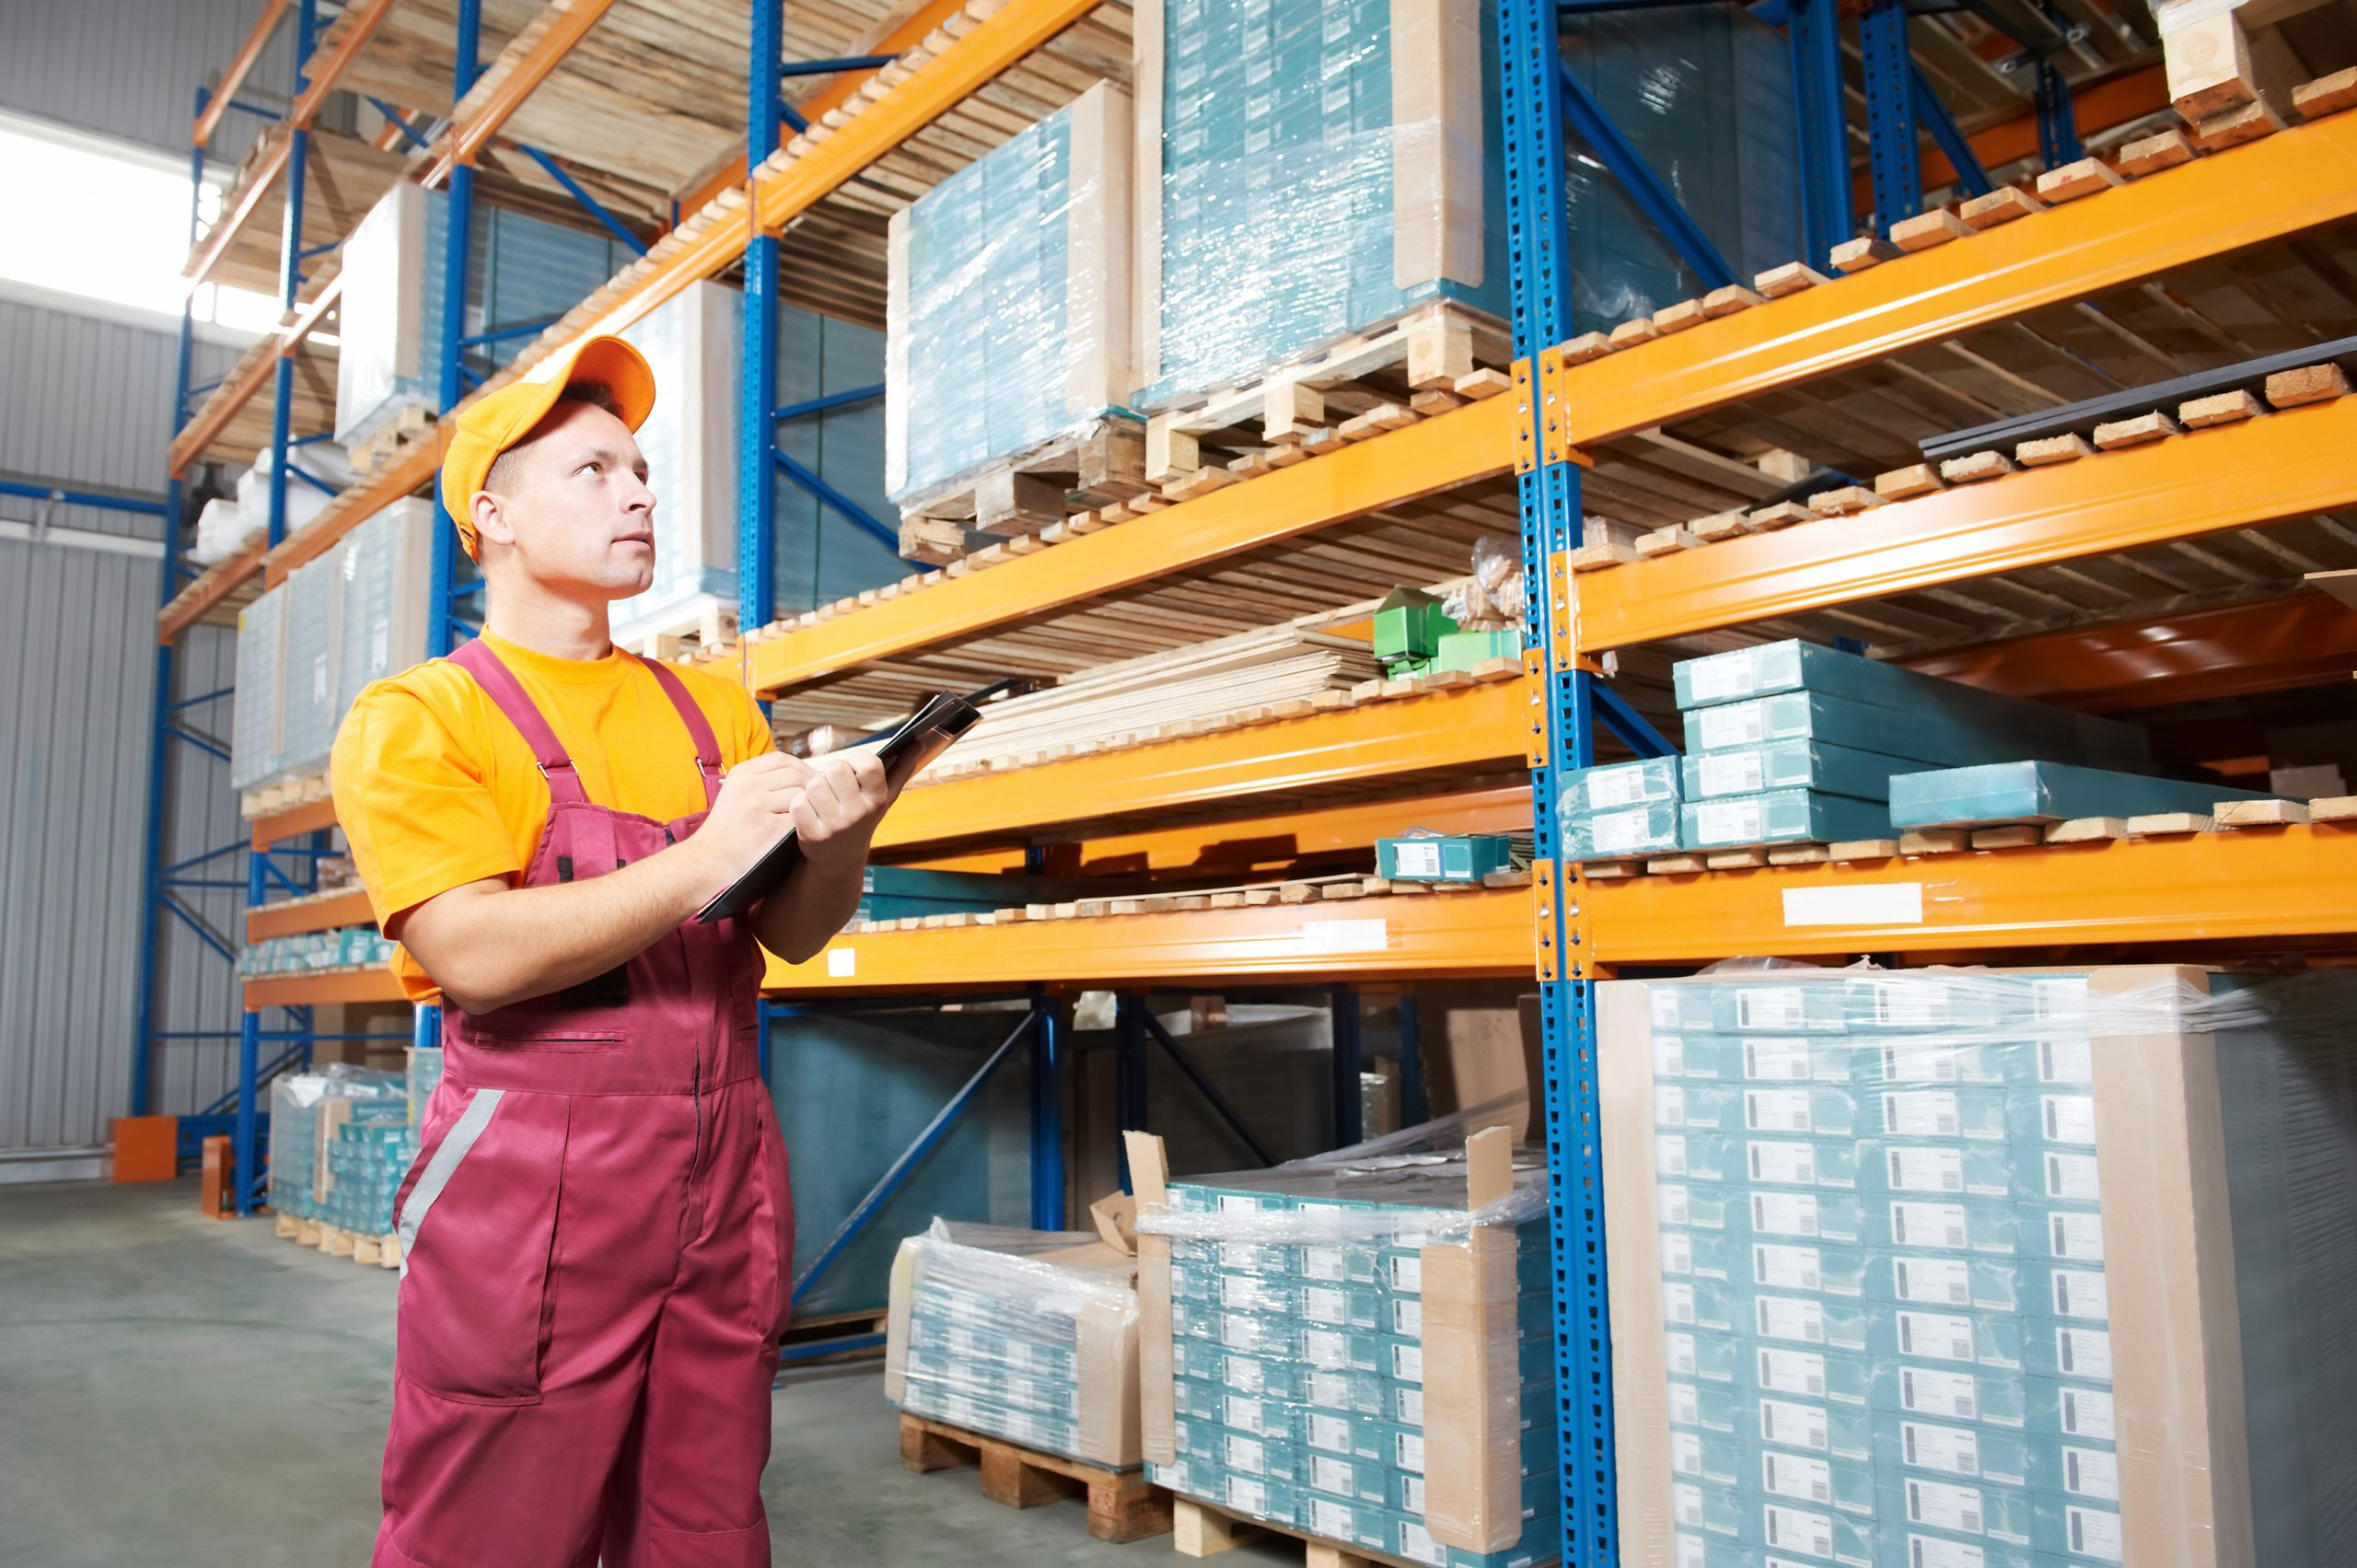 Inspector in uniform doing racking inspection in a warehouse